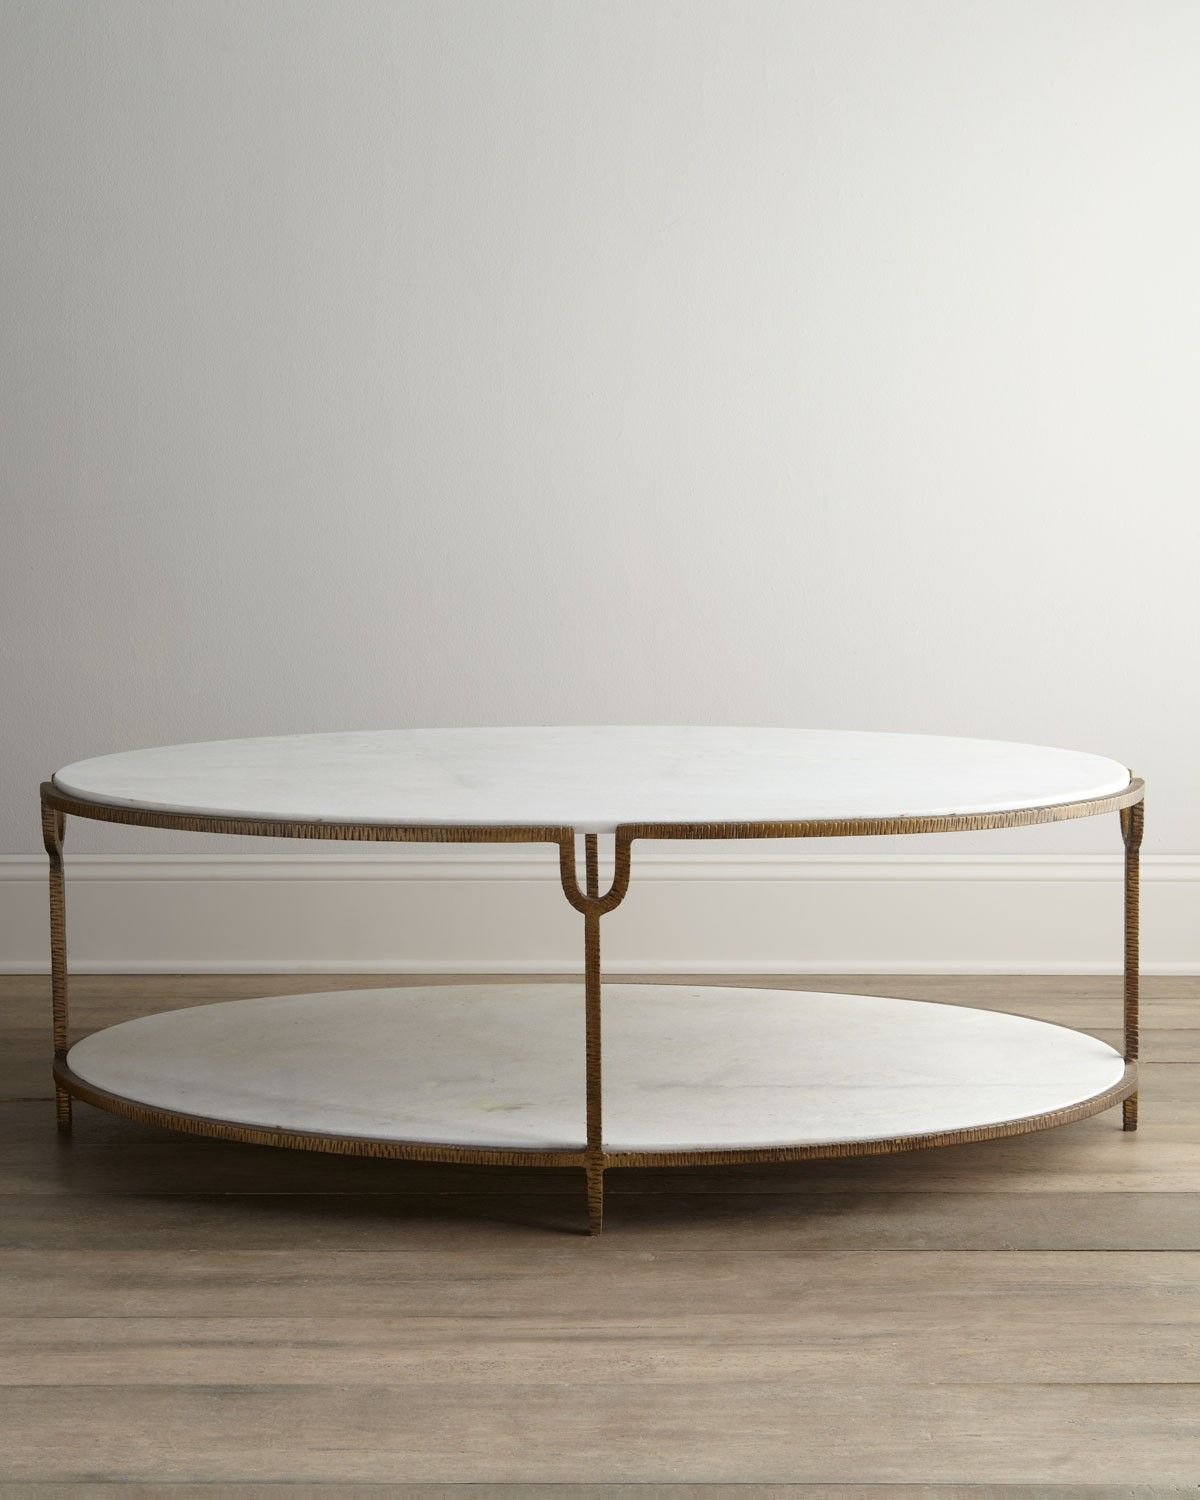 Marble Top Round Coffee Table Ideas On Foter